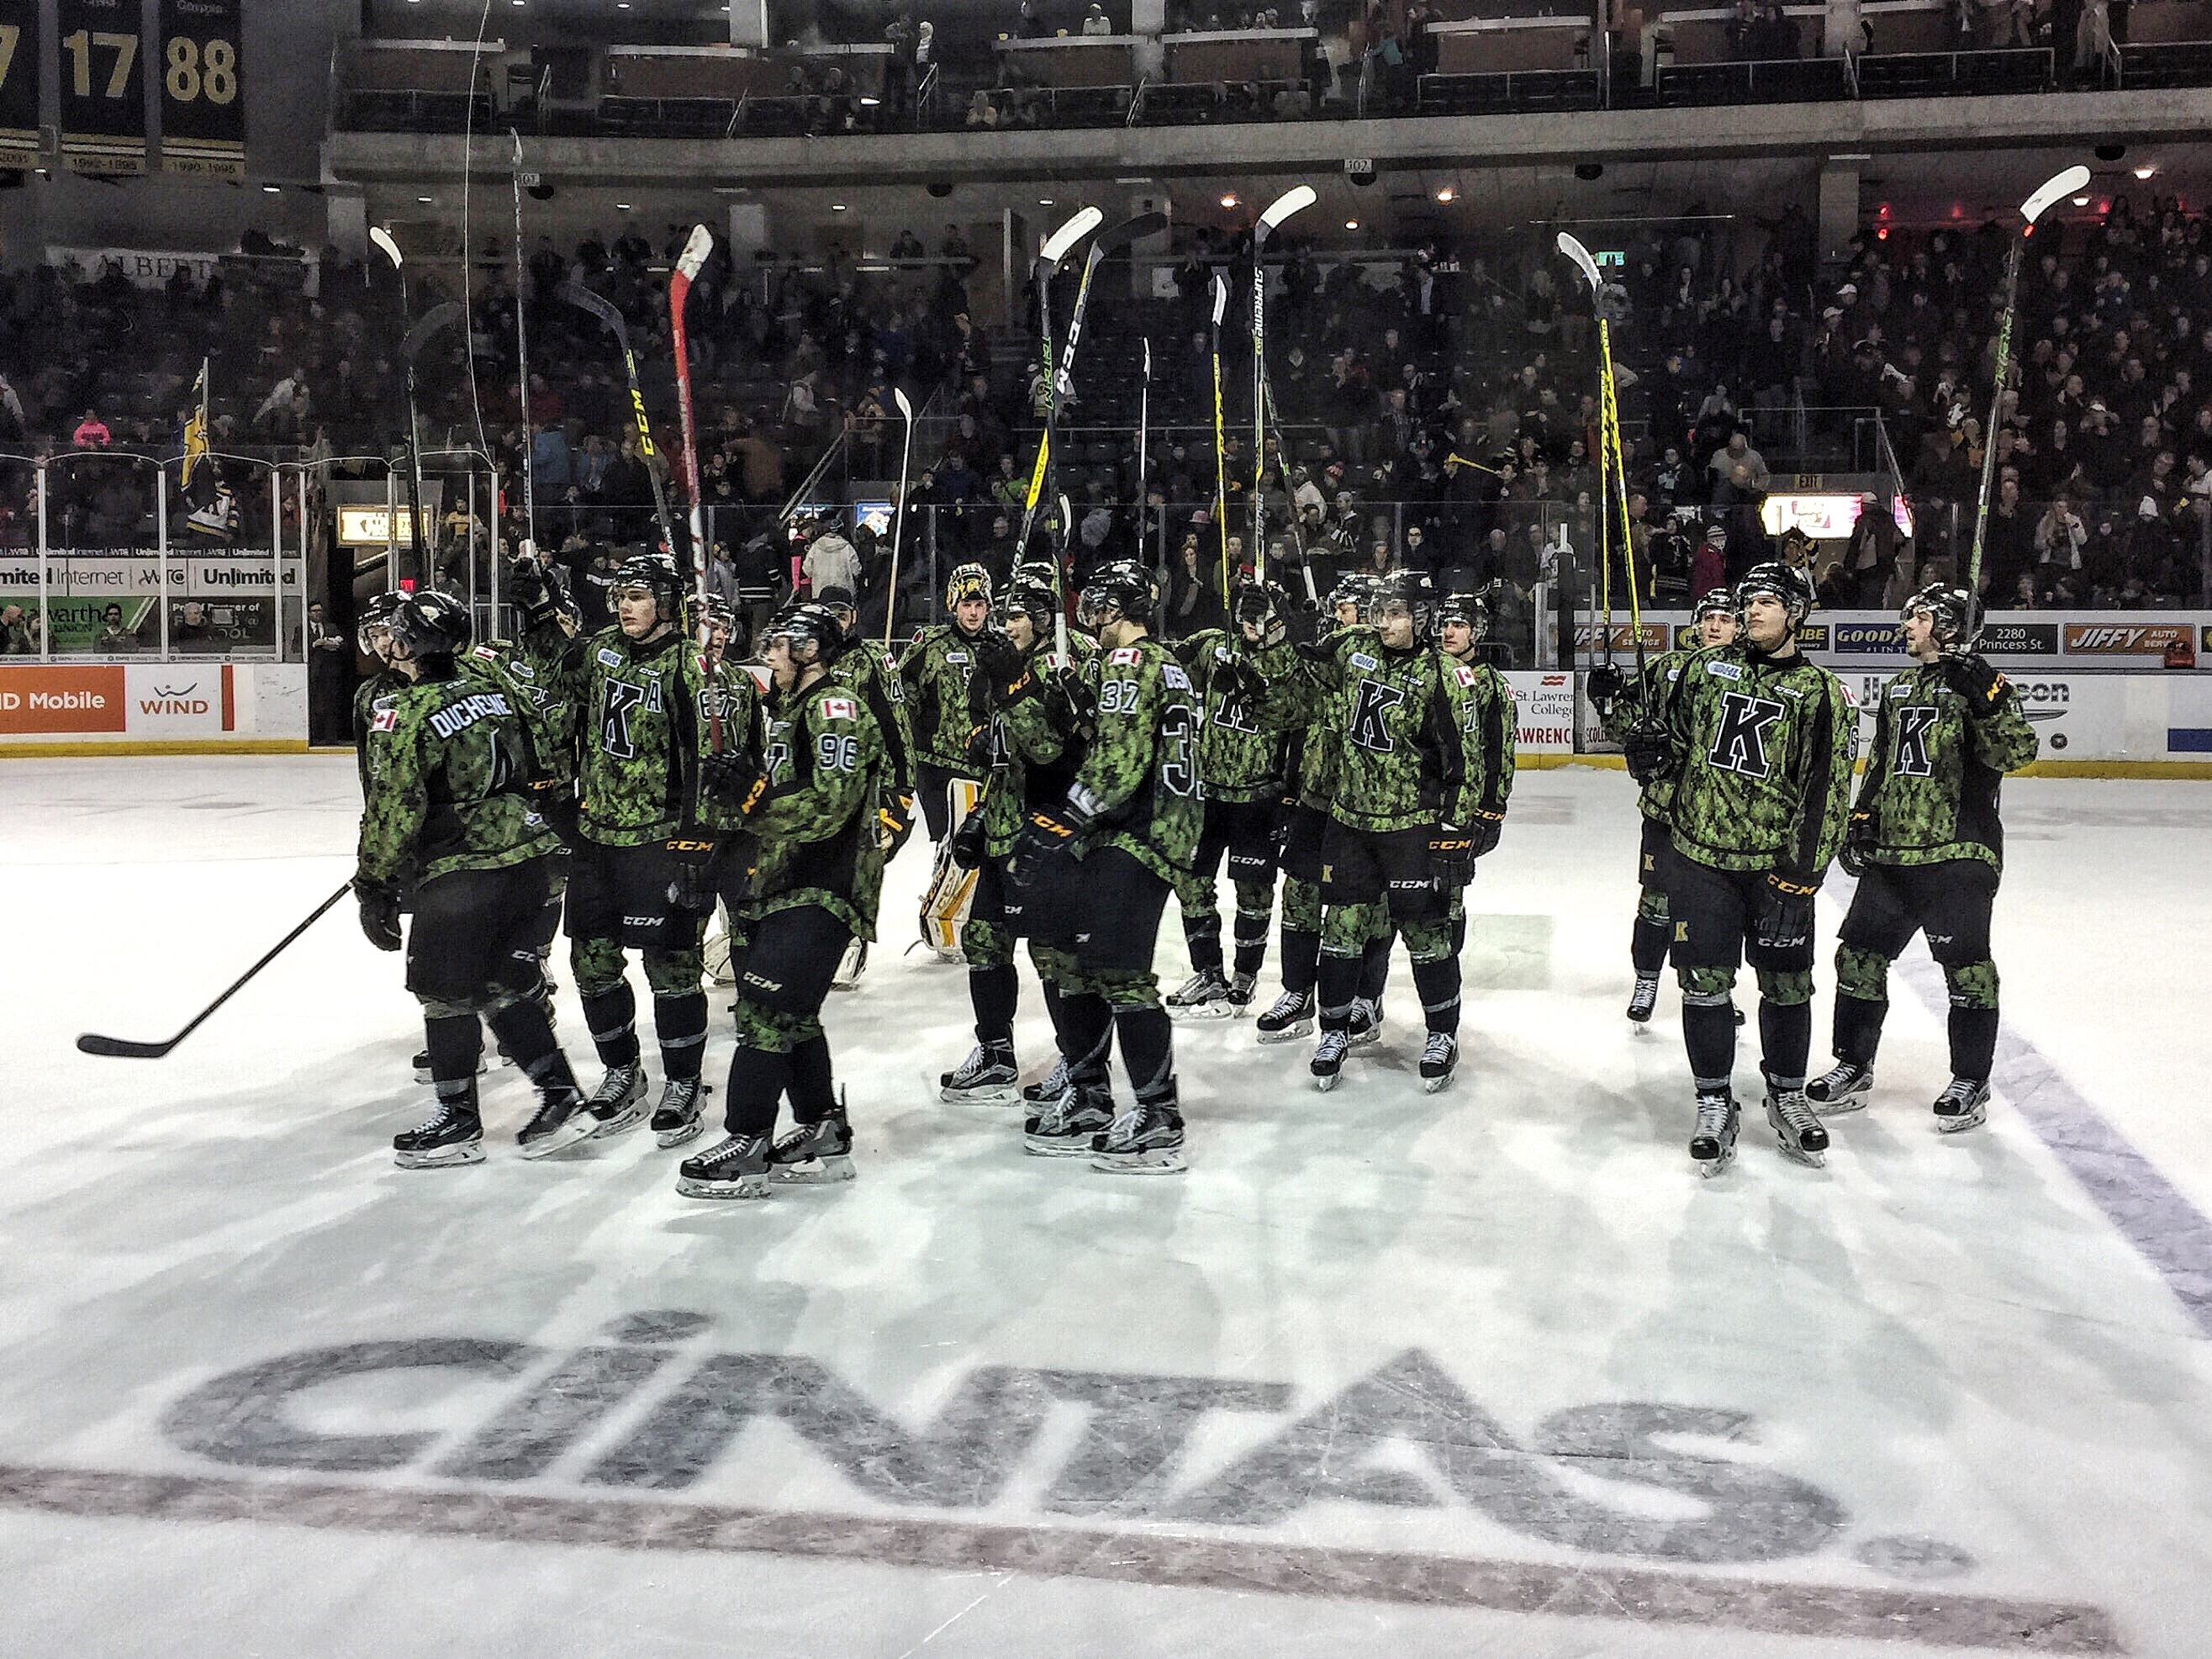 The Kingston Frontenacs 'Salute the Troops' sitting in section 113 after a big 6-2 win over the London Knights. Photo by Tyler Penney